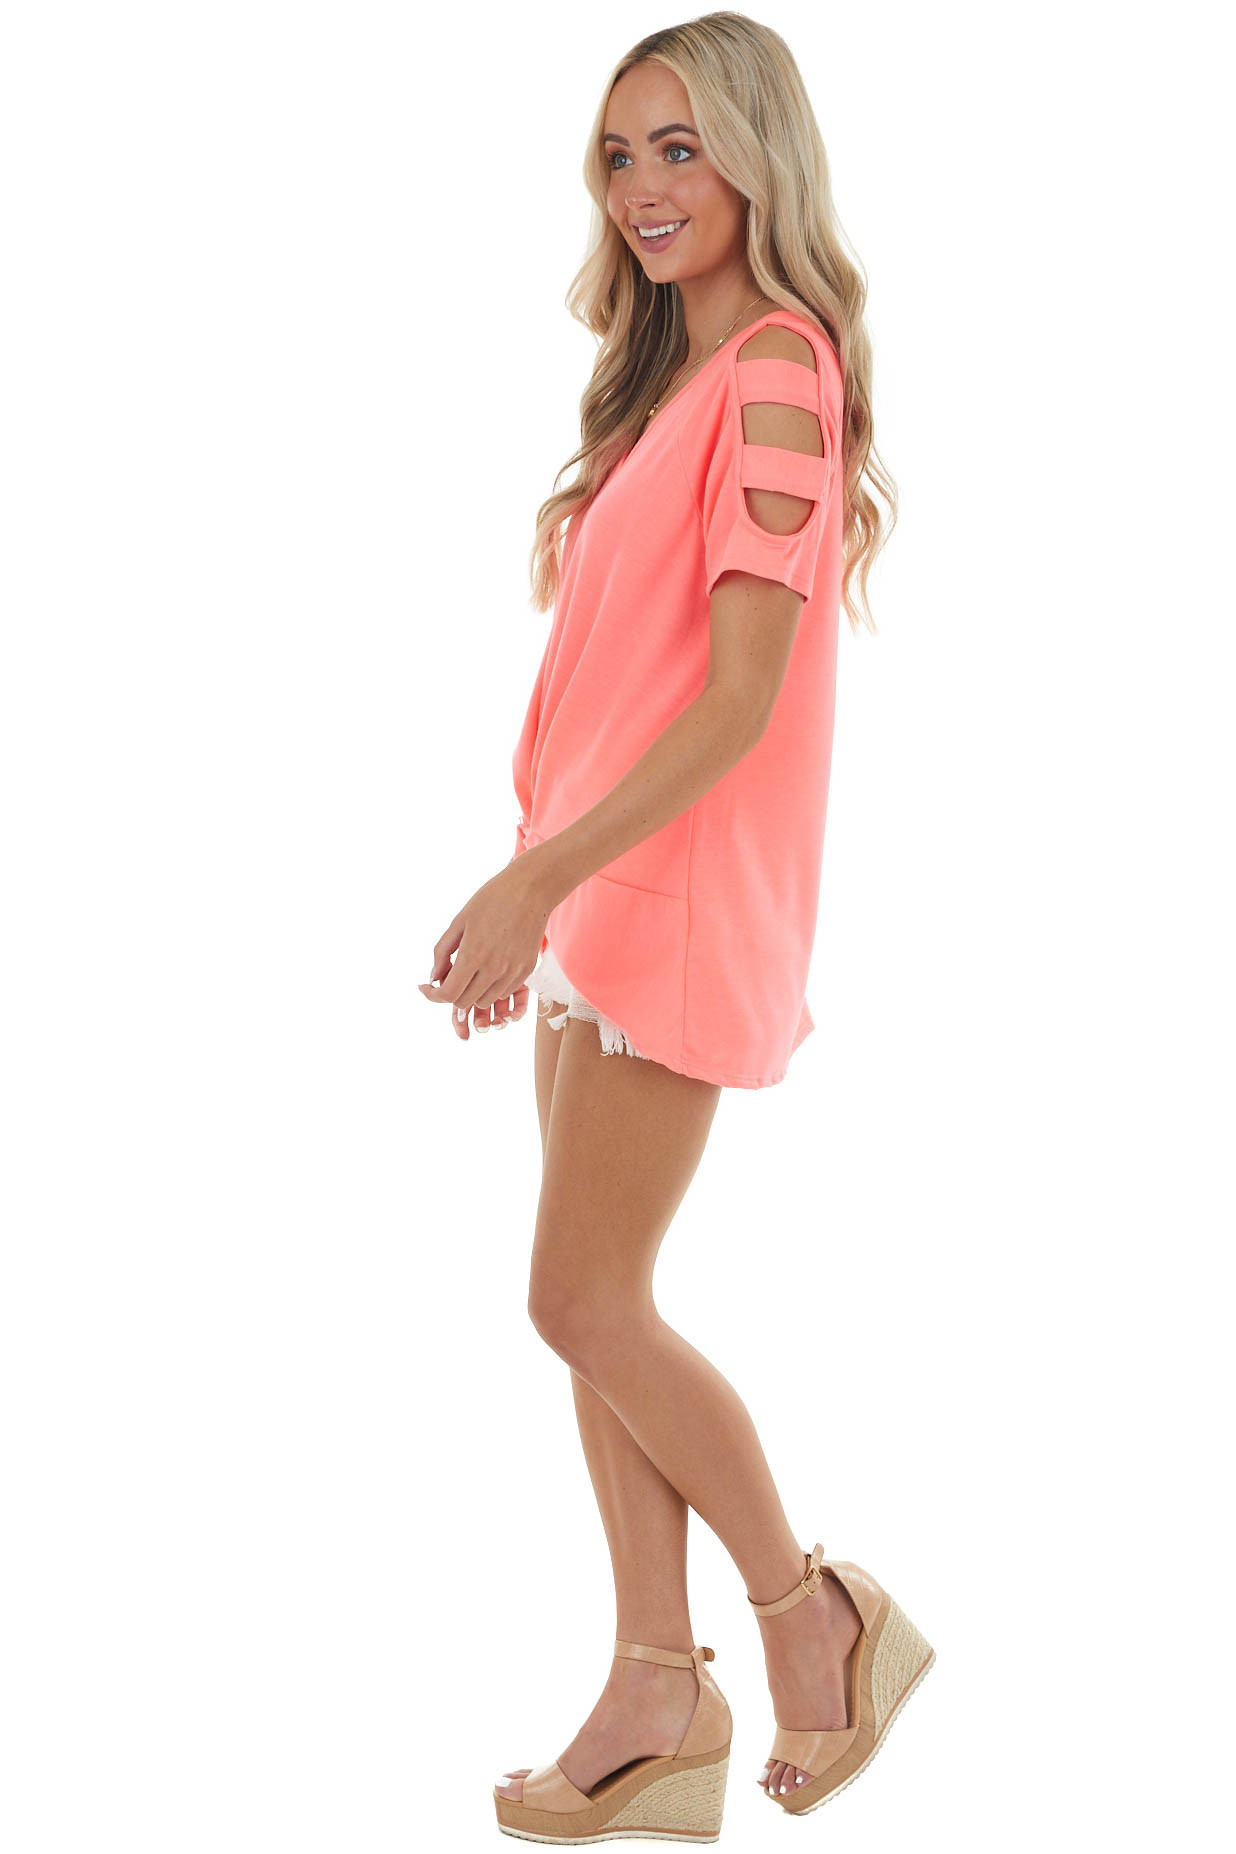 Neon Pink Knit Top with Ladder Cut Out Sleeves